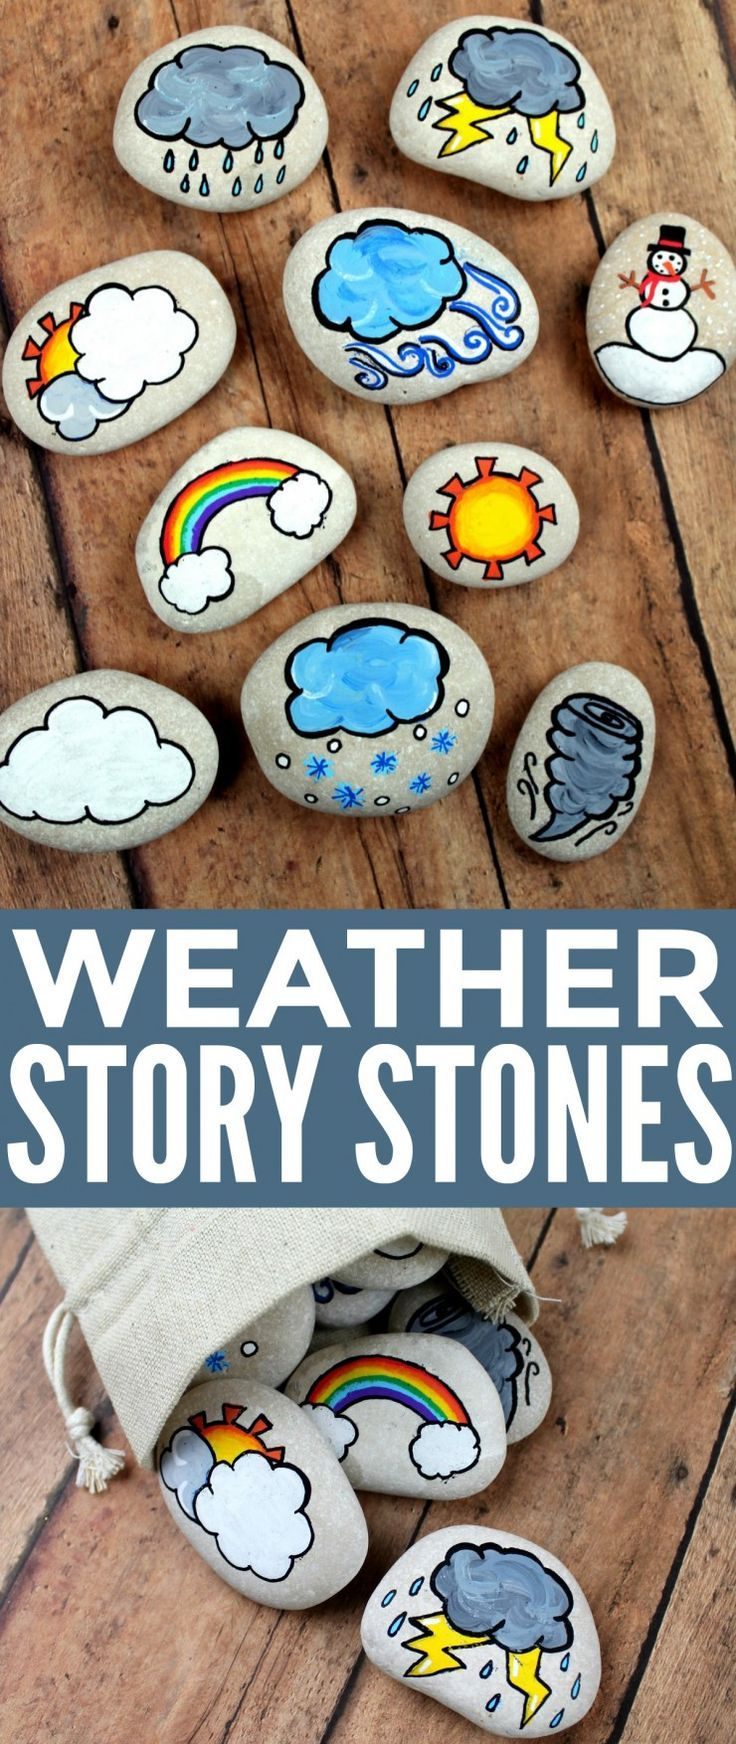 Photo of These weather story stones are a DIY toy for storytelli … #this #sp …